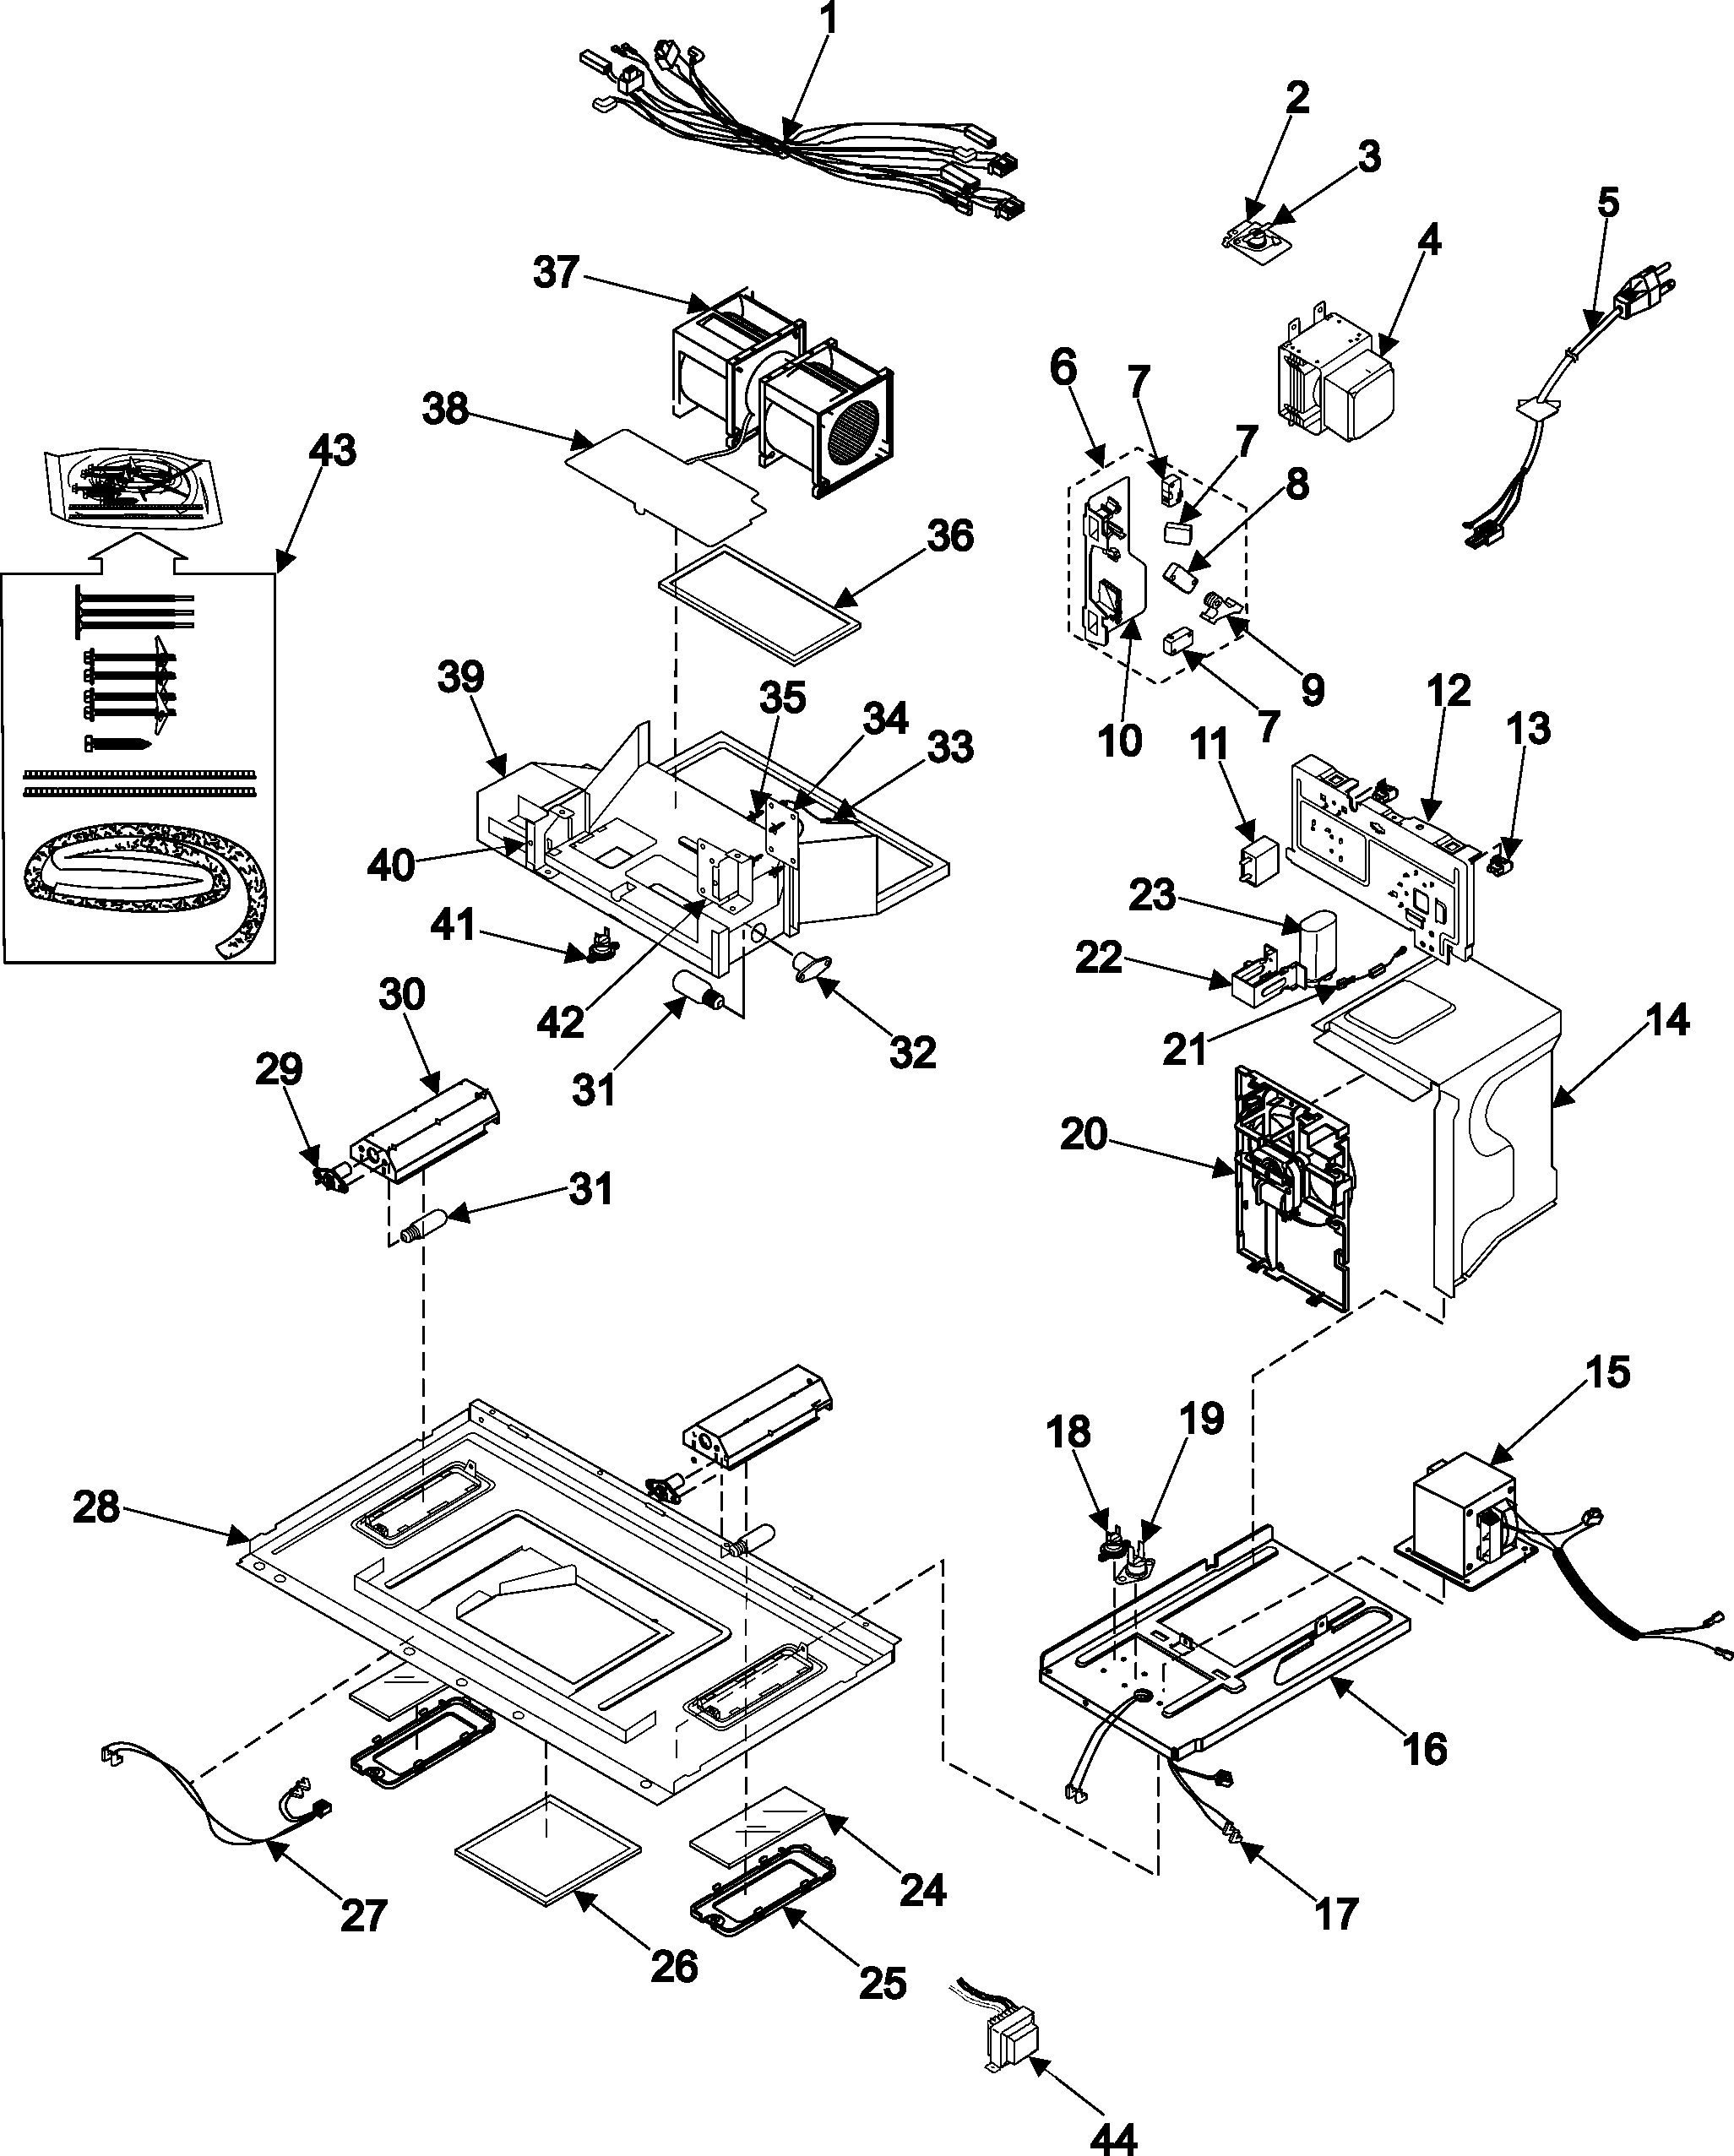 INTERNAL CONTROL/LATCH ASY/BASE Diagram & Parts List for